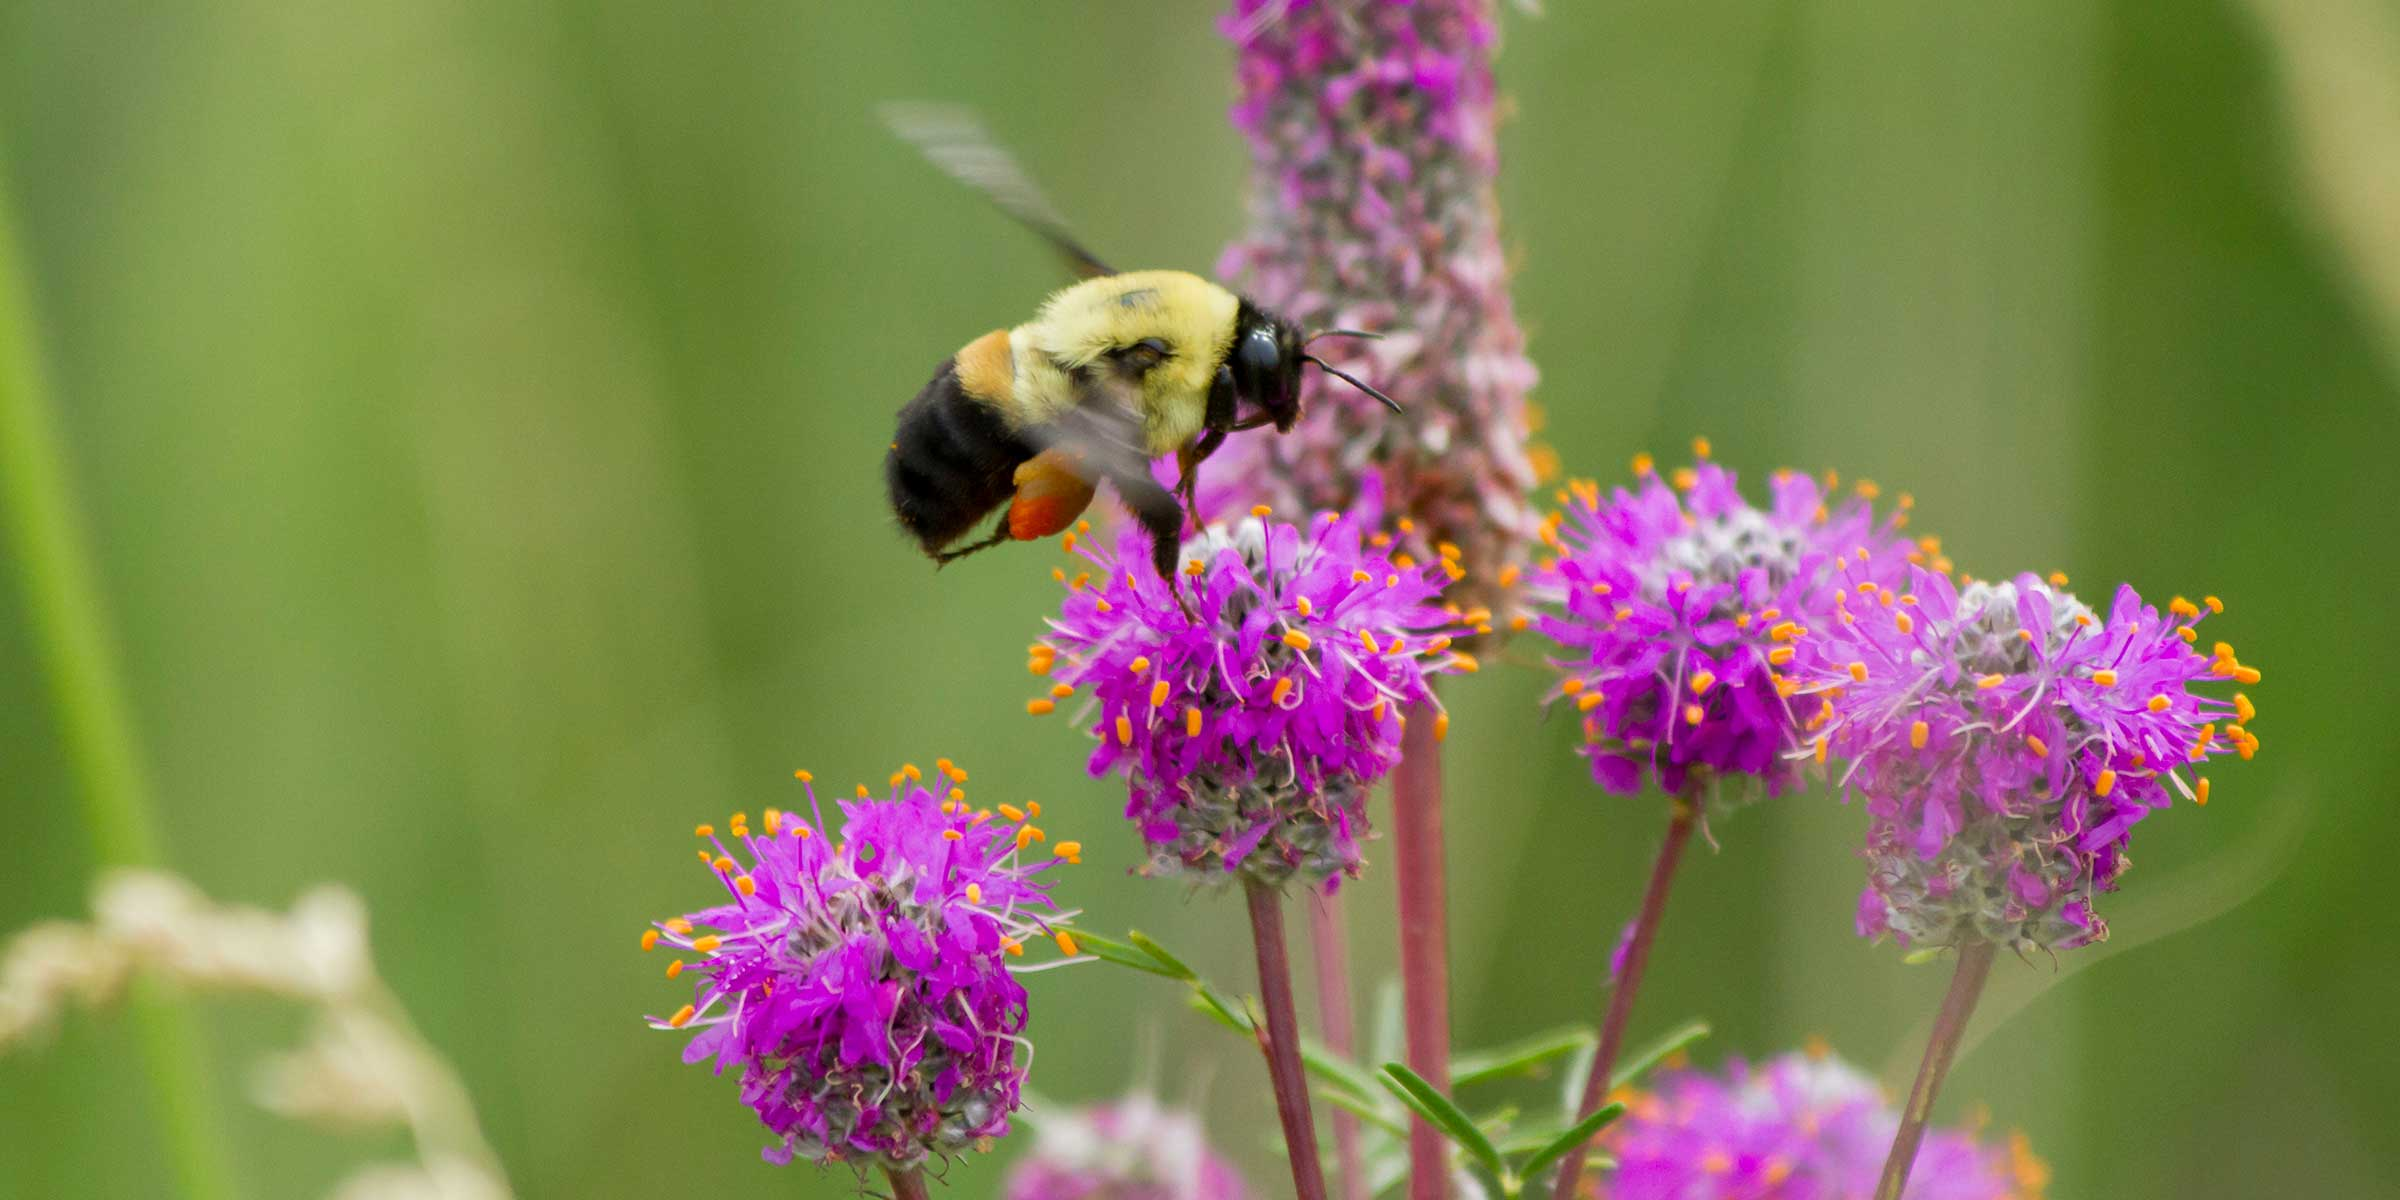 Plan Bee Volunteer Citizen Scientists Can Help Survey Pollinators